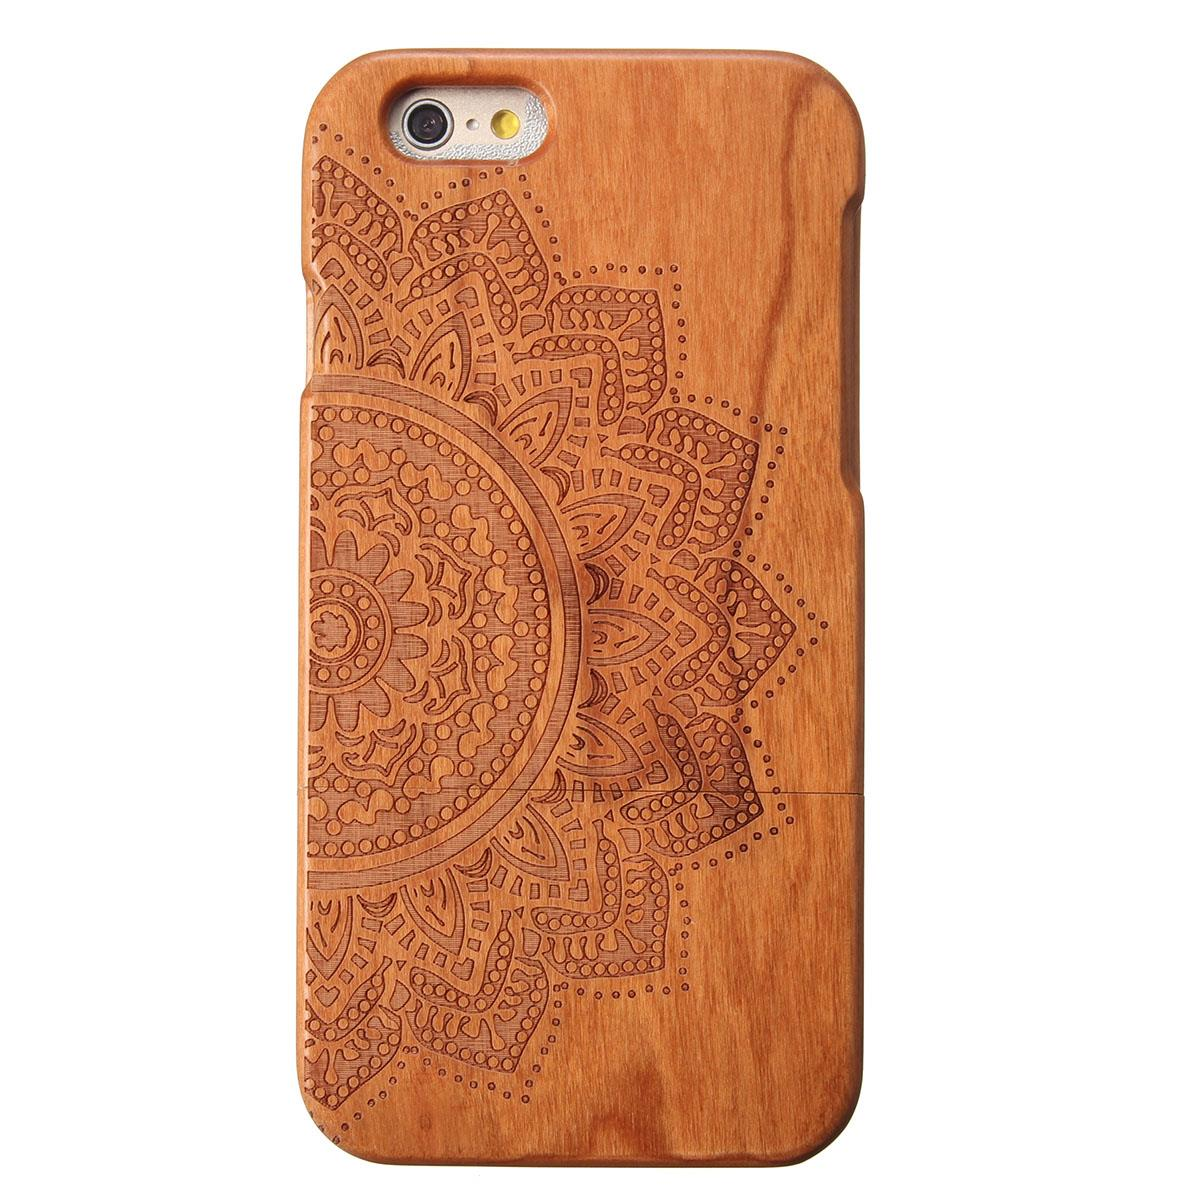 New Handmade REAL Wooden Case Hard Back Cover Case For Apple for iPhone 6 6s 4.7 inch Wallet Pouch bag(China (Mainland))